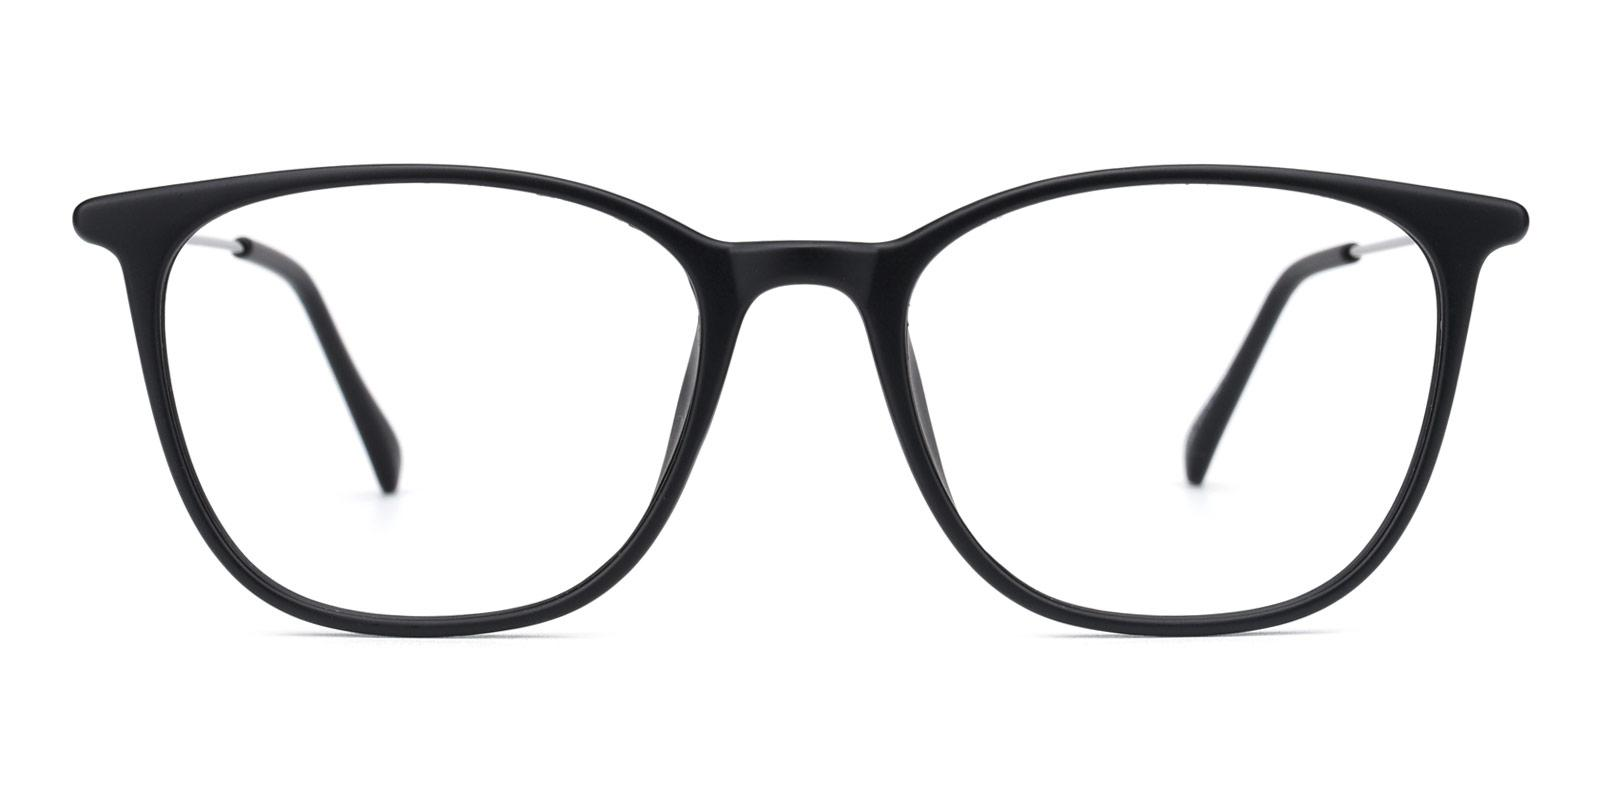 Who-Black-Square-TR-Eyeglasses-detail